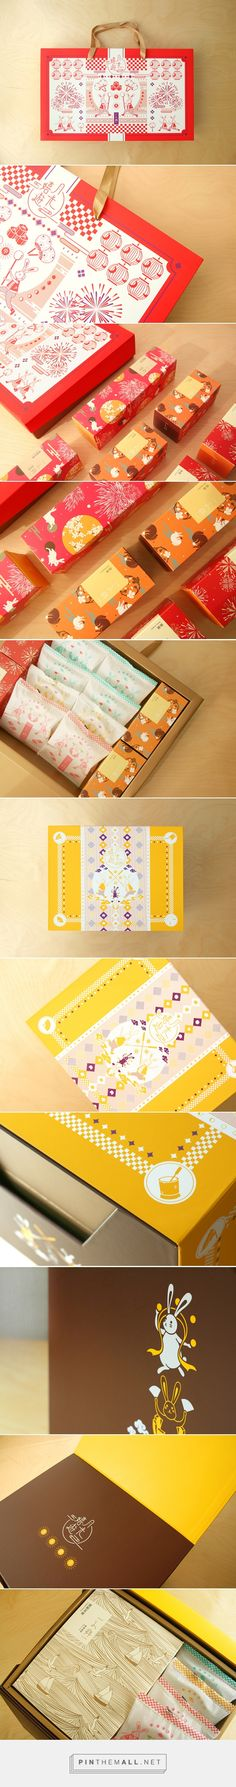 MURA︱東西設計 curated by Packaging Diva PD. Packaging design…